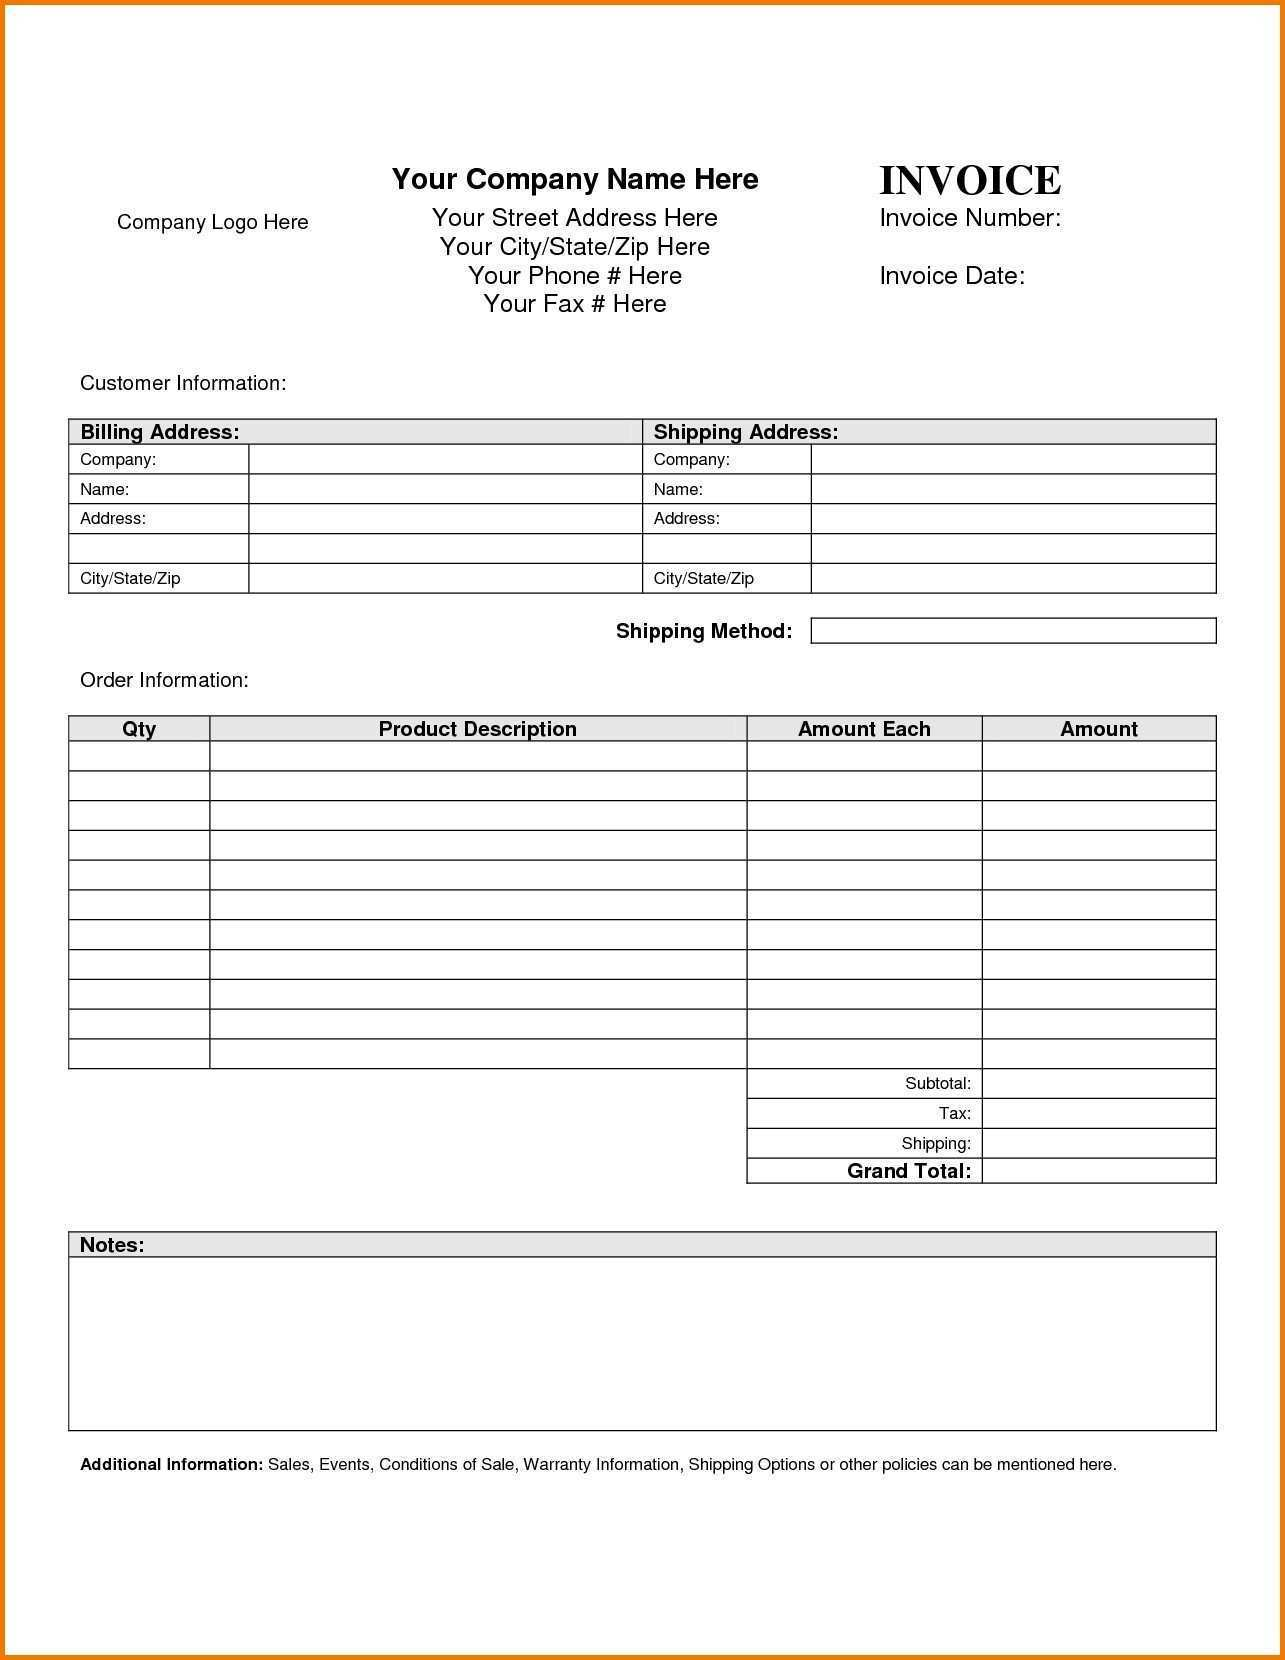 88 Report Blank Invoice Template Pdf Now for Blank Invoice Template Pdf